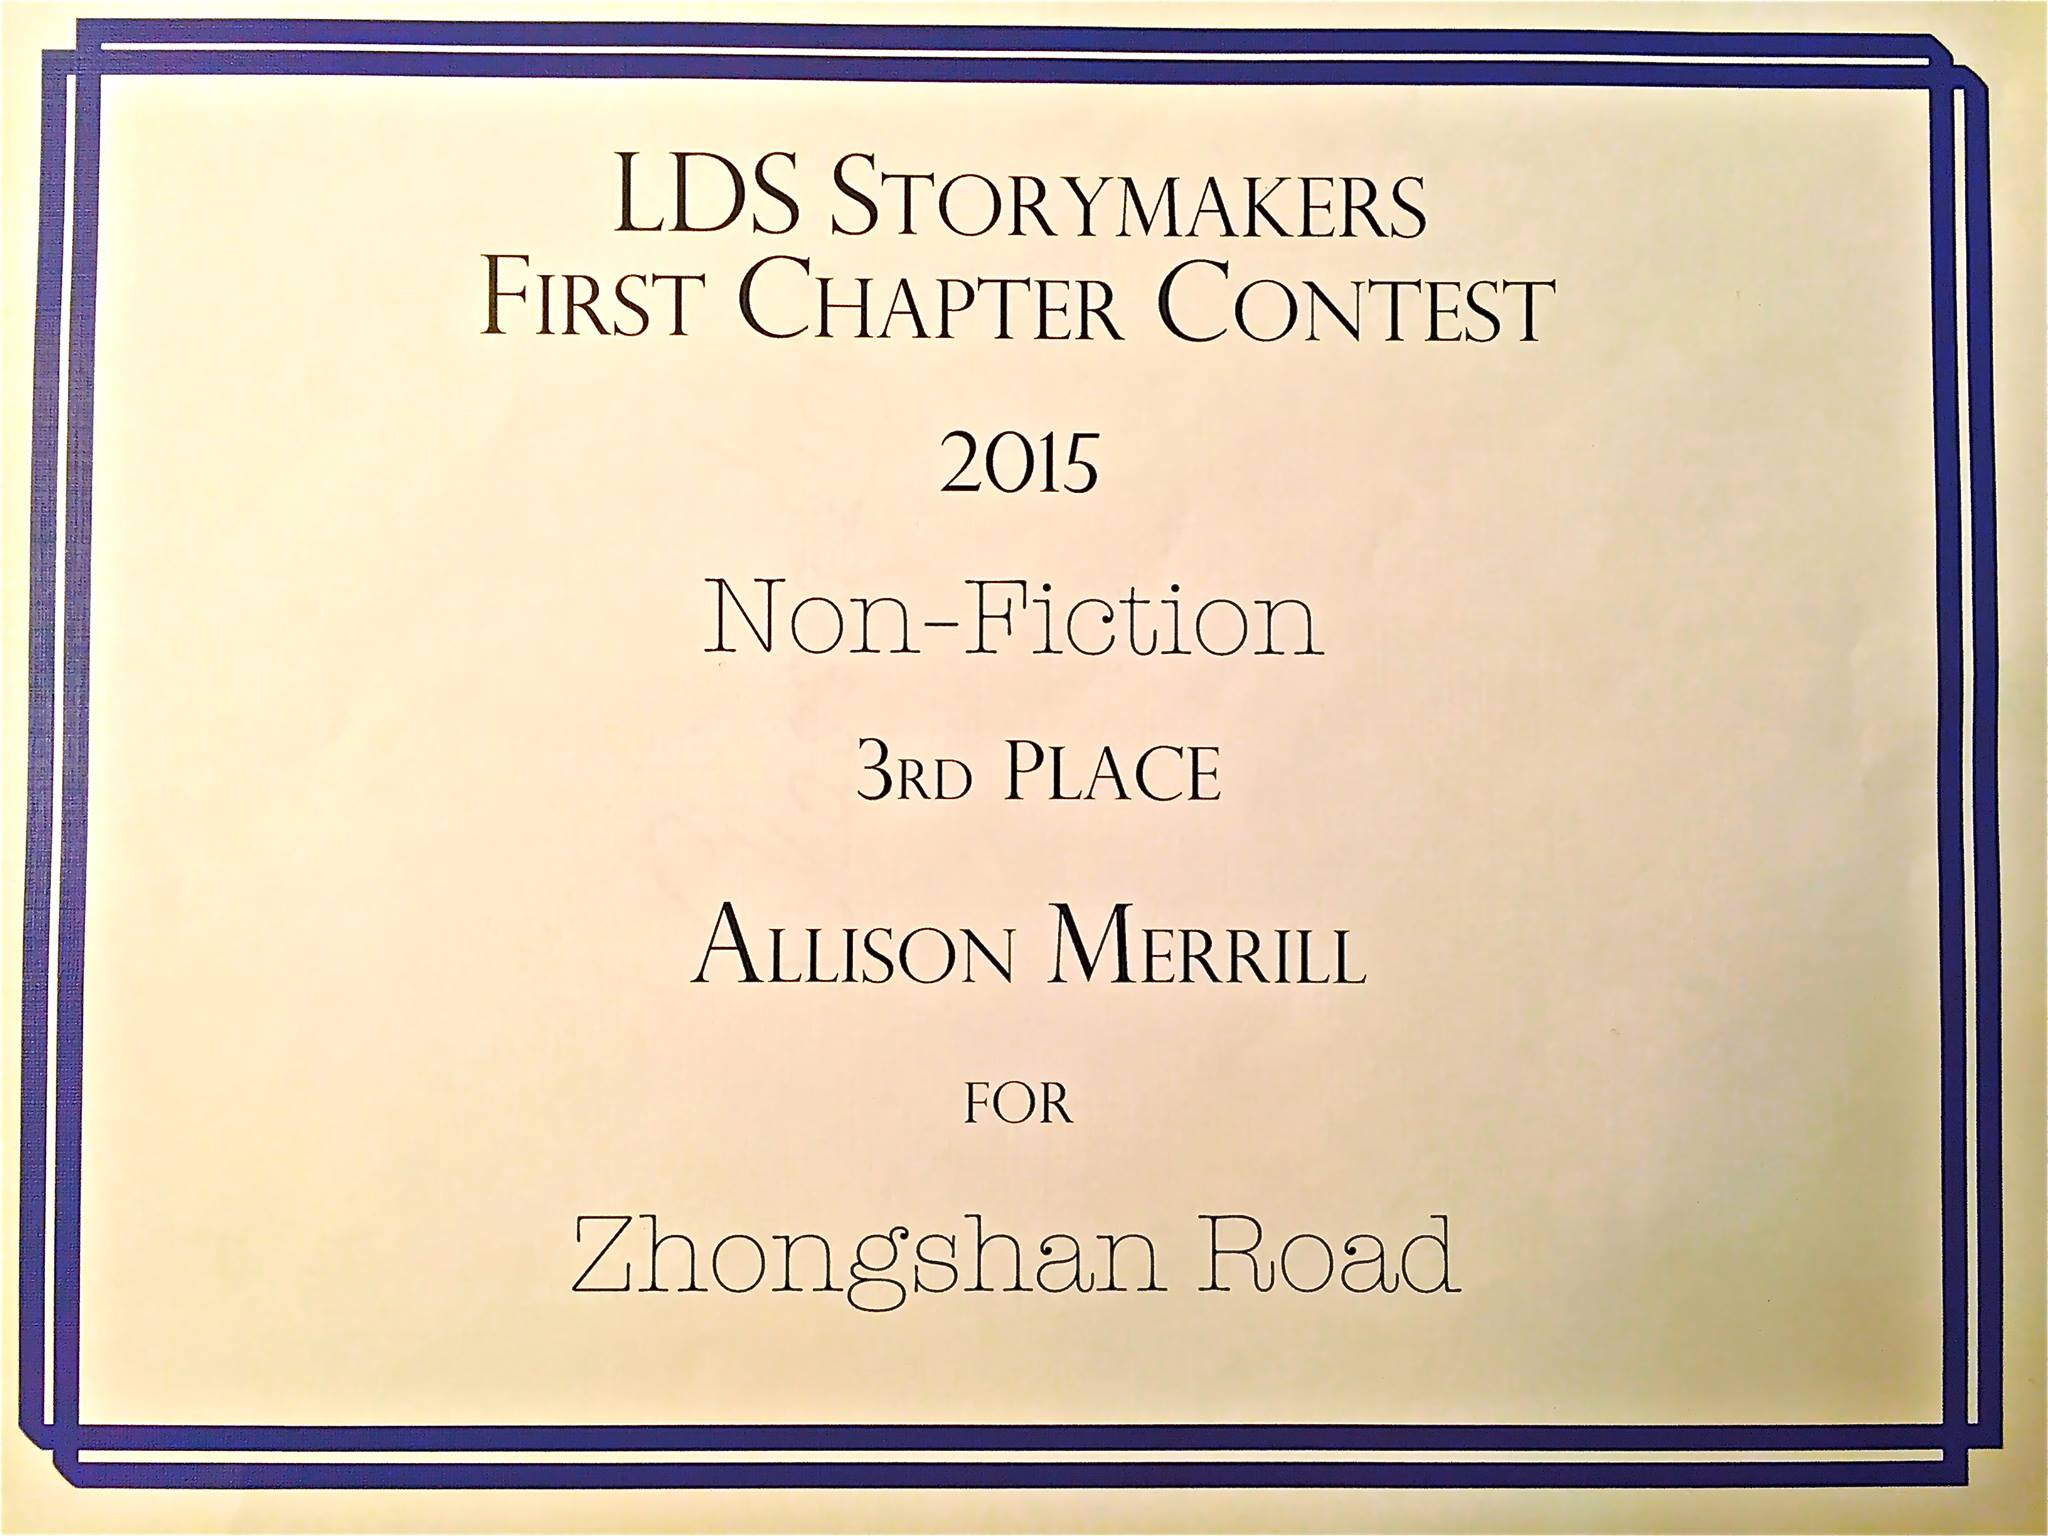 Allison won third place in the Storymakers Conference First Chapter Contest. 2015.